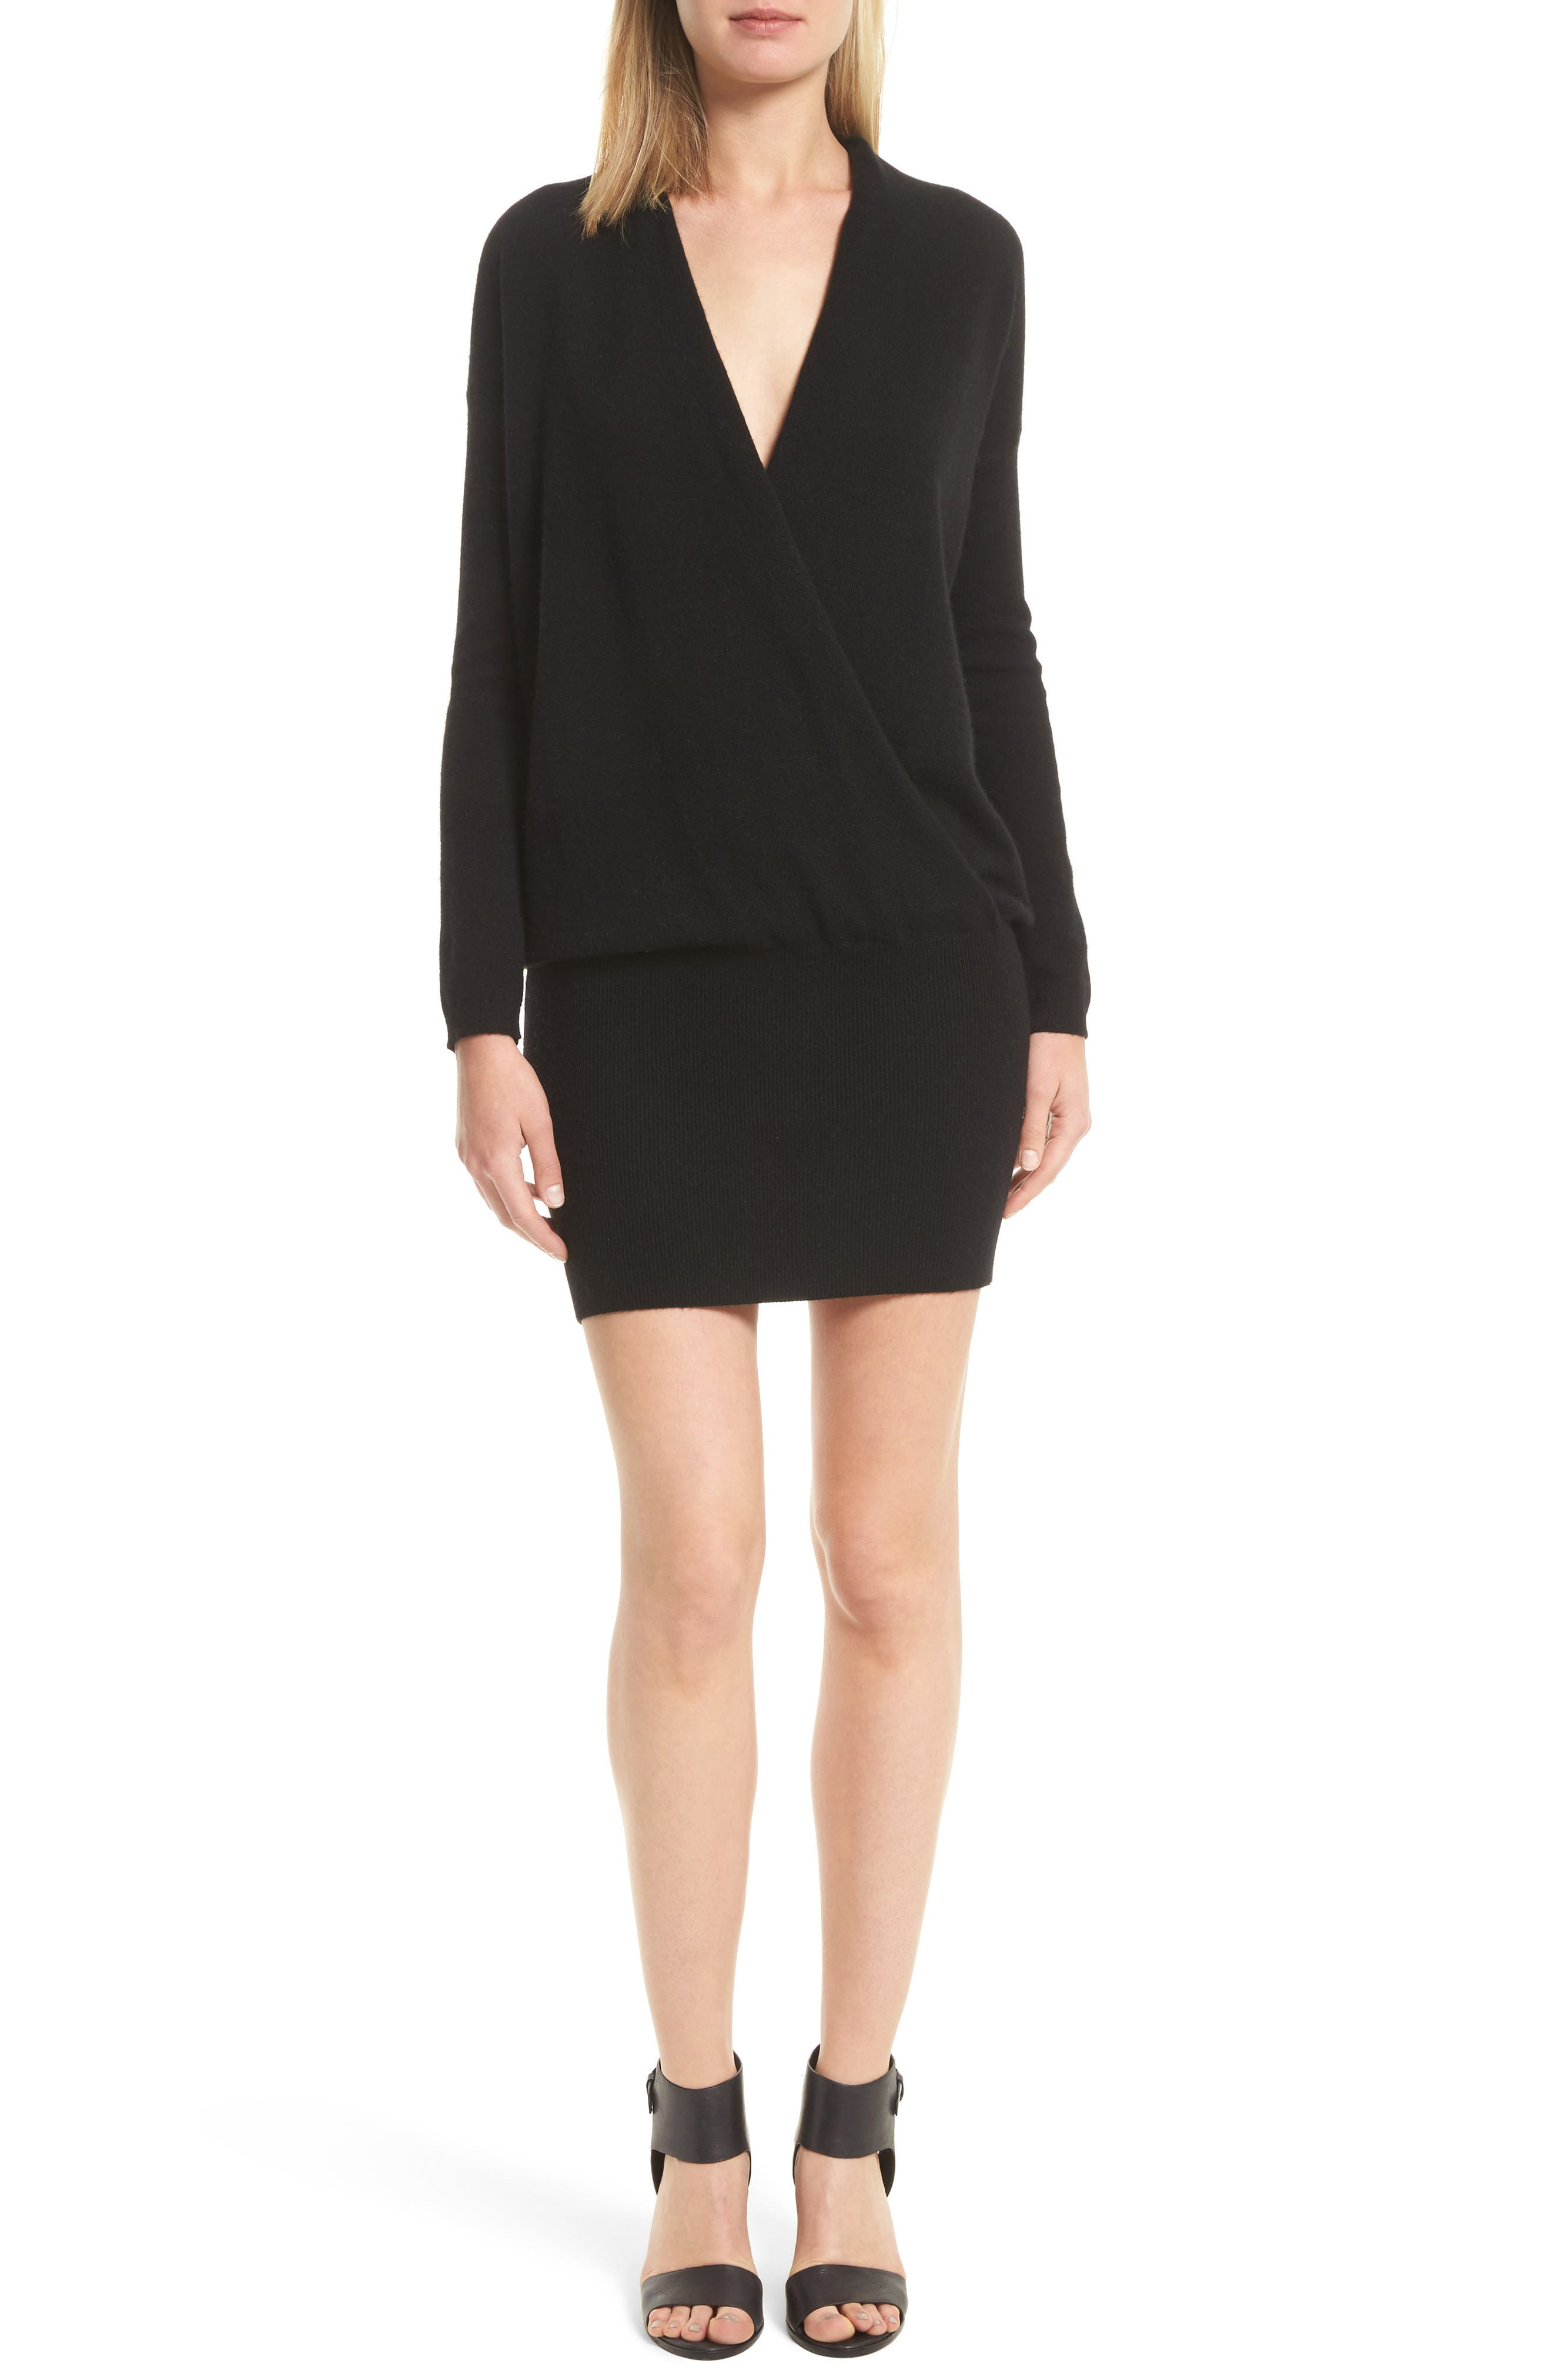 Joie Syrin Wool & Cashmere Sweater Dress